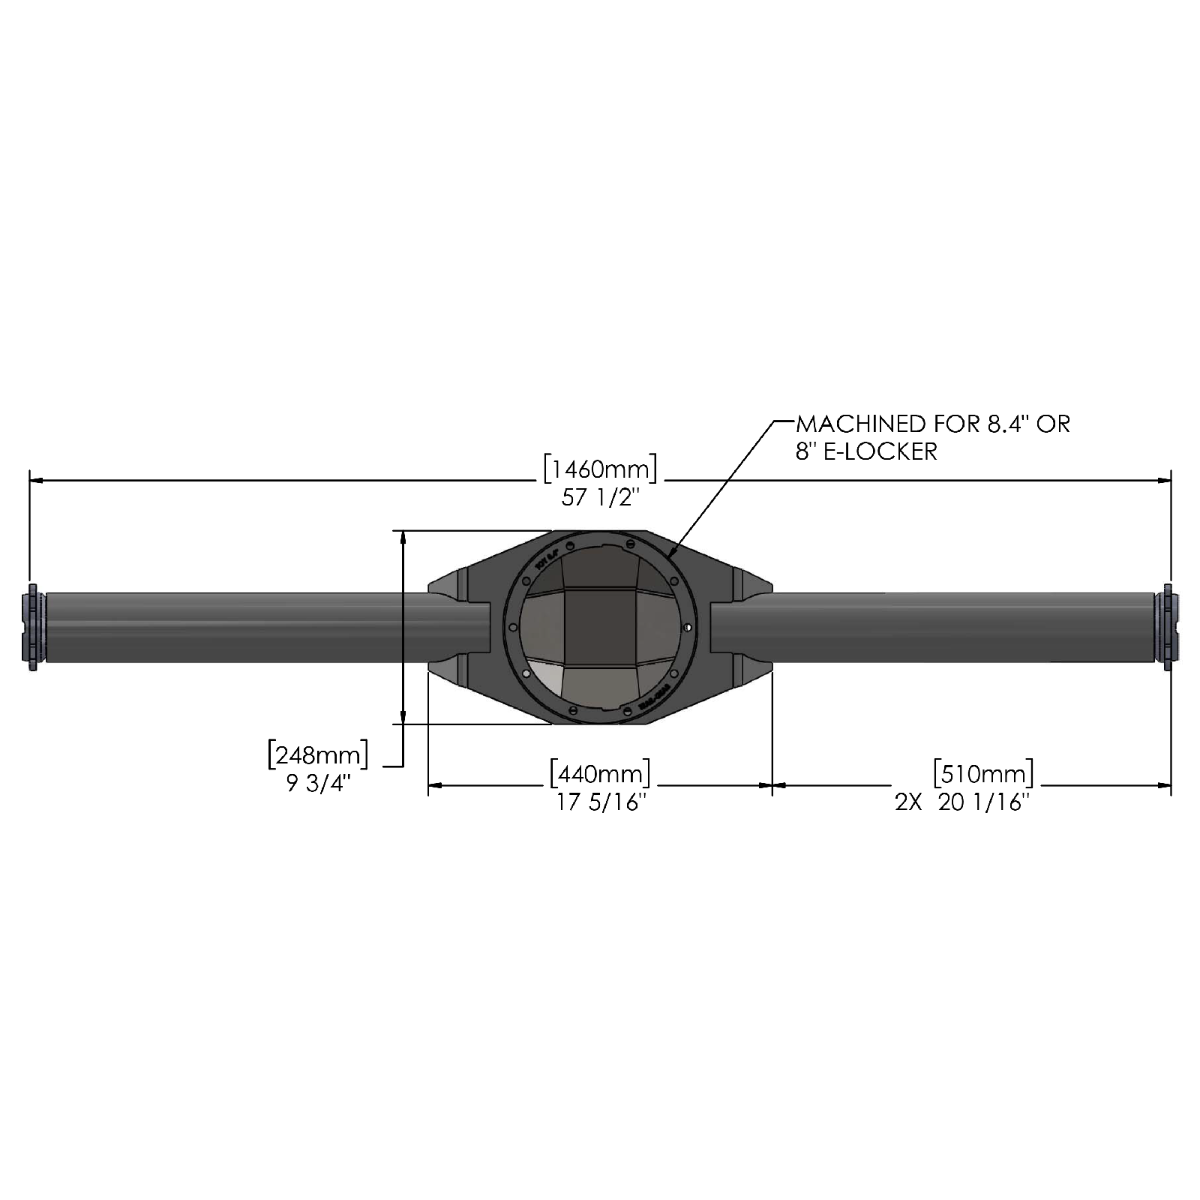 Trail-Gear Fabricated 2005-2015 Tacoma Rear Axle Housing